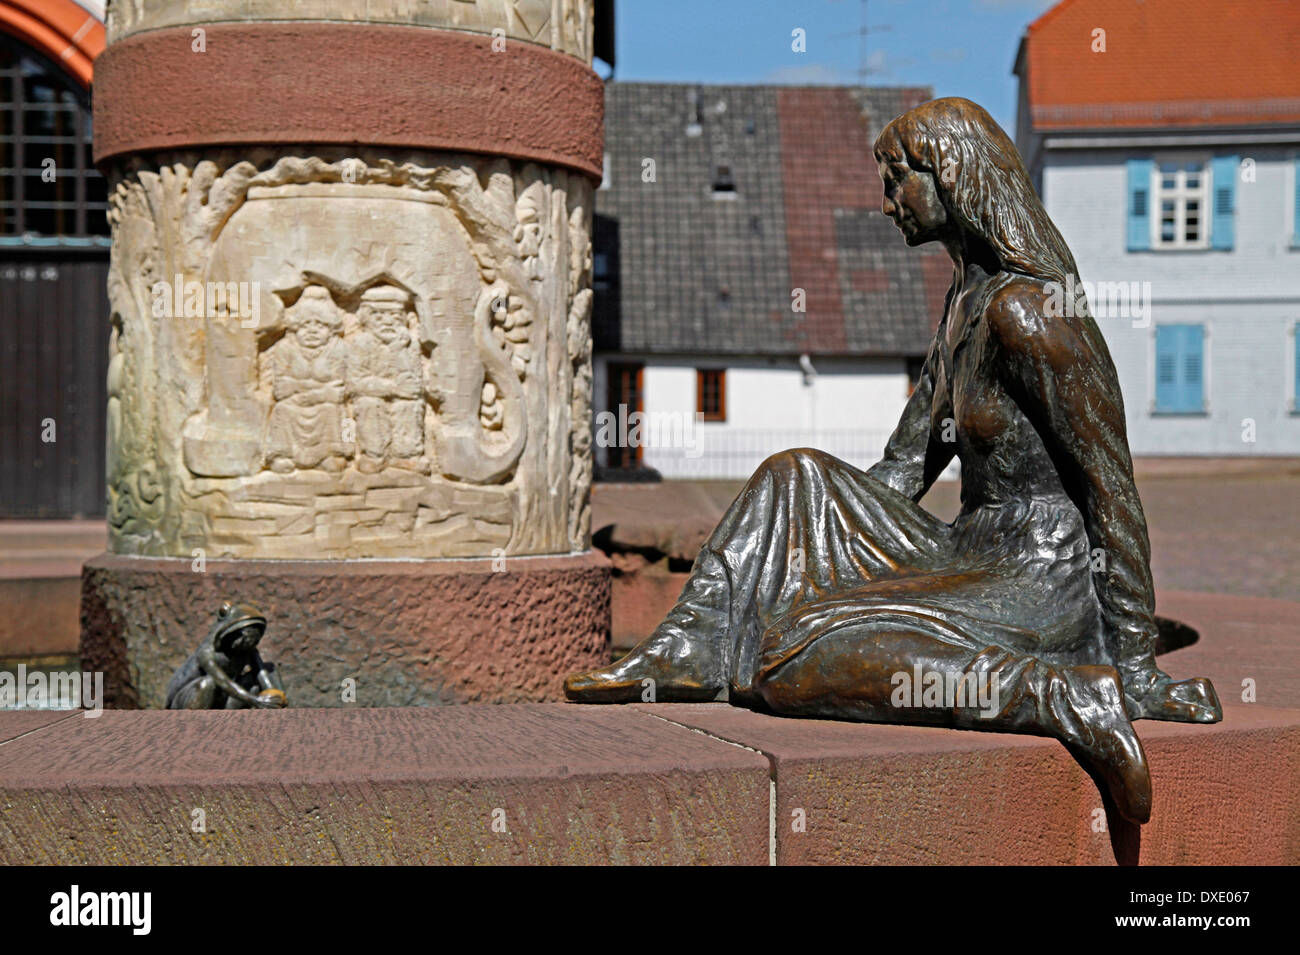 Fountain of fairy tales, The Frog King and the Princess, Steinau an der Strasse, district Main-Kinzig-Kreis, Hesse, Germany - Stock Image